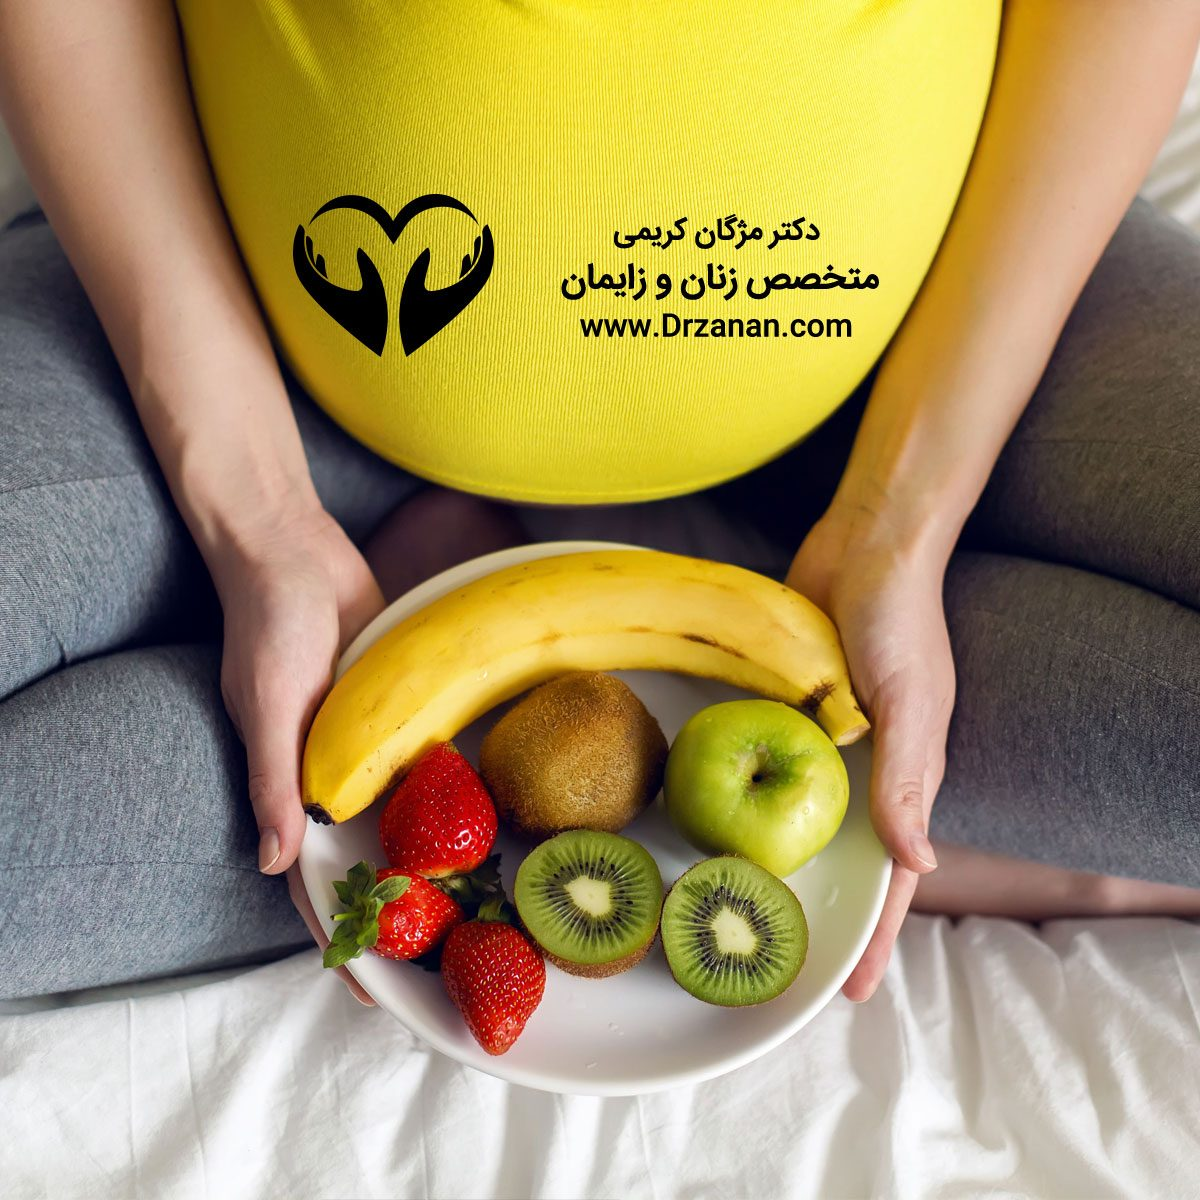 proper-pregnancy-requires-a-good-diet-before-and-during-pregnancy-1200x1200.jpg